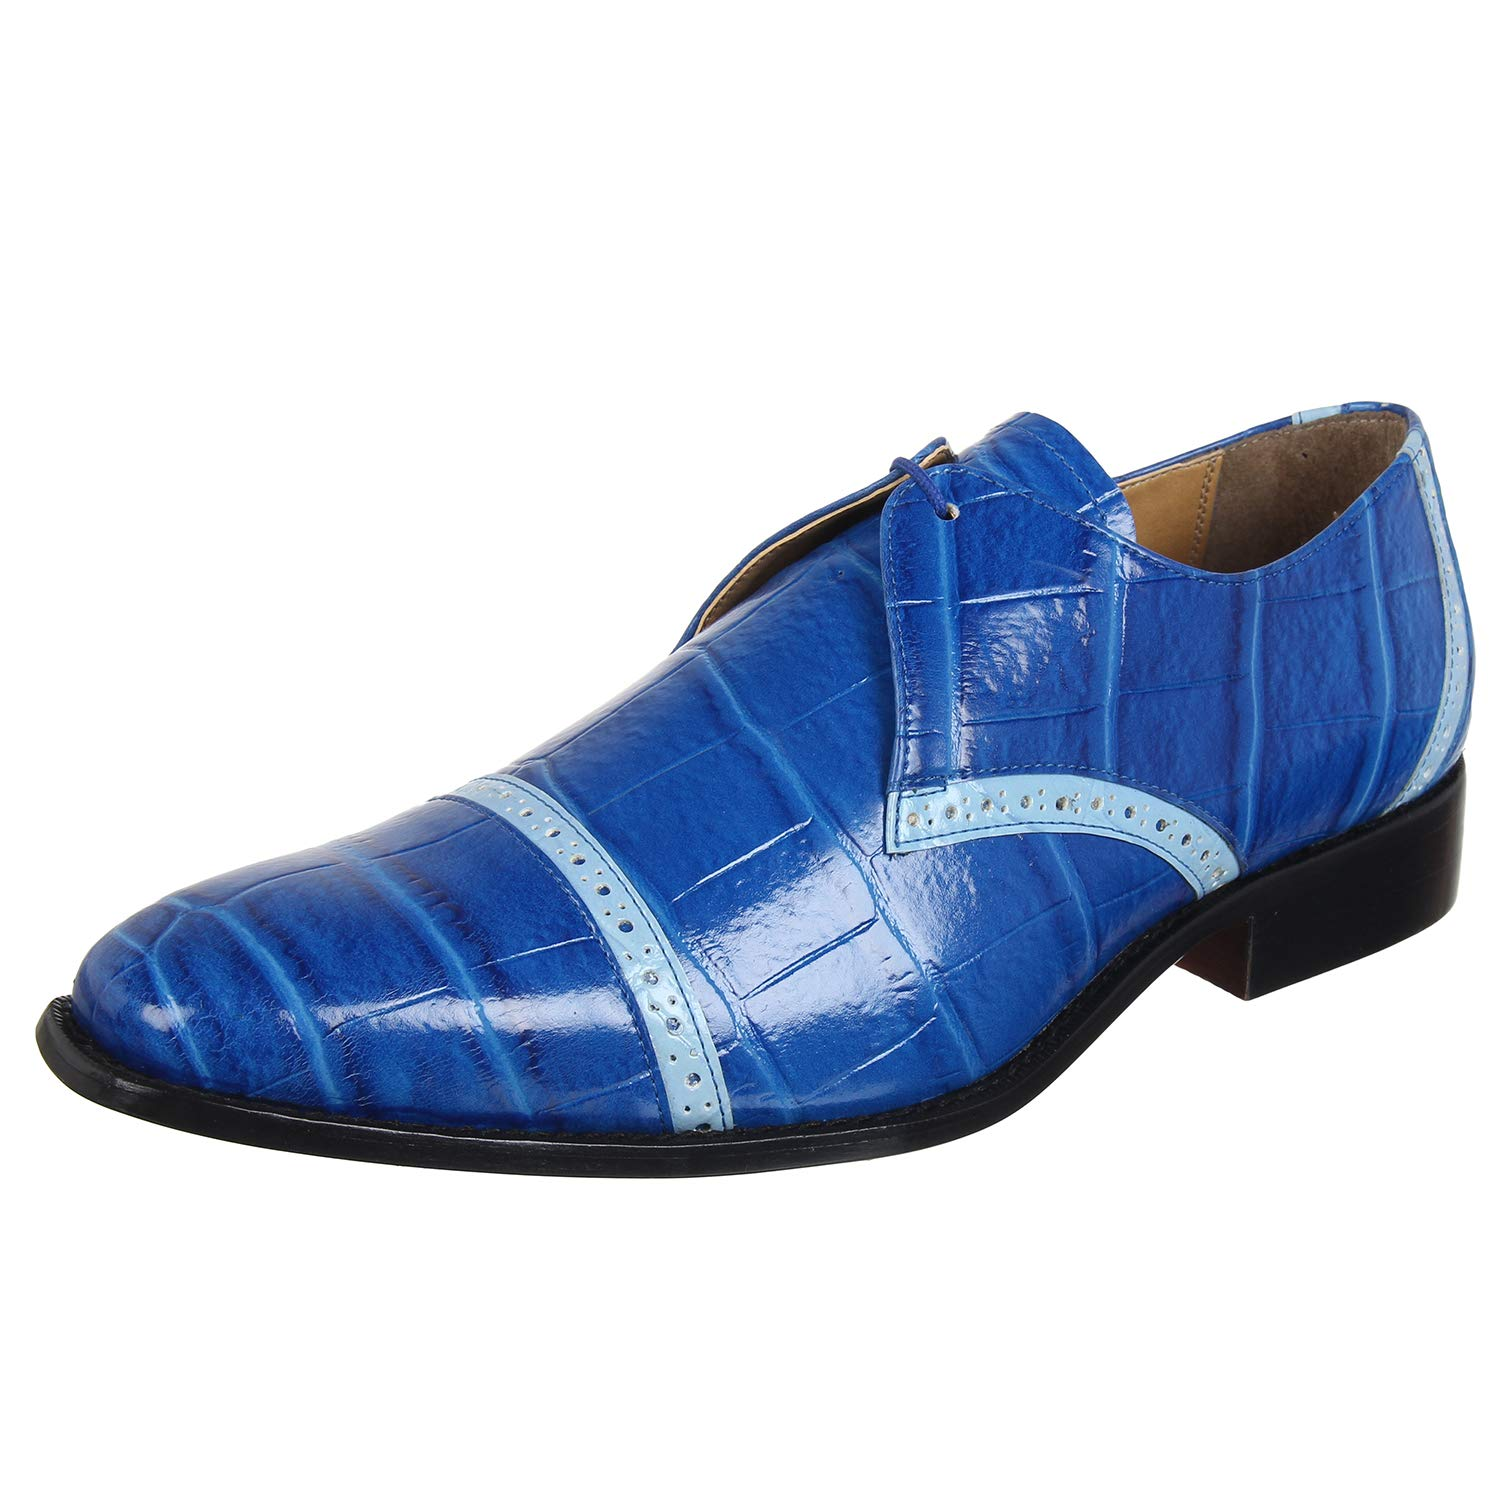 Liberty Mens Croco Ostrich Print PU Synthetic Leather Lace Up Dress Shoes